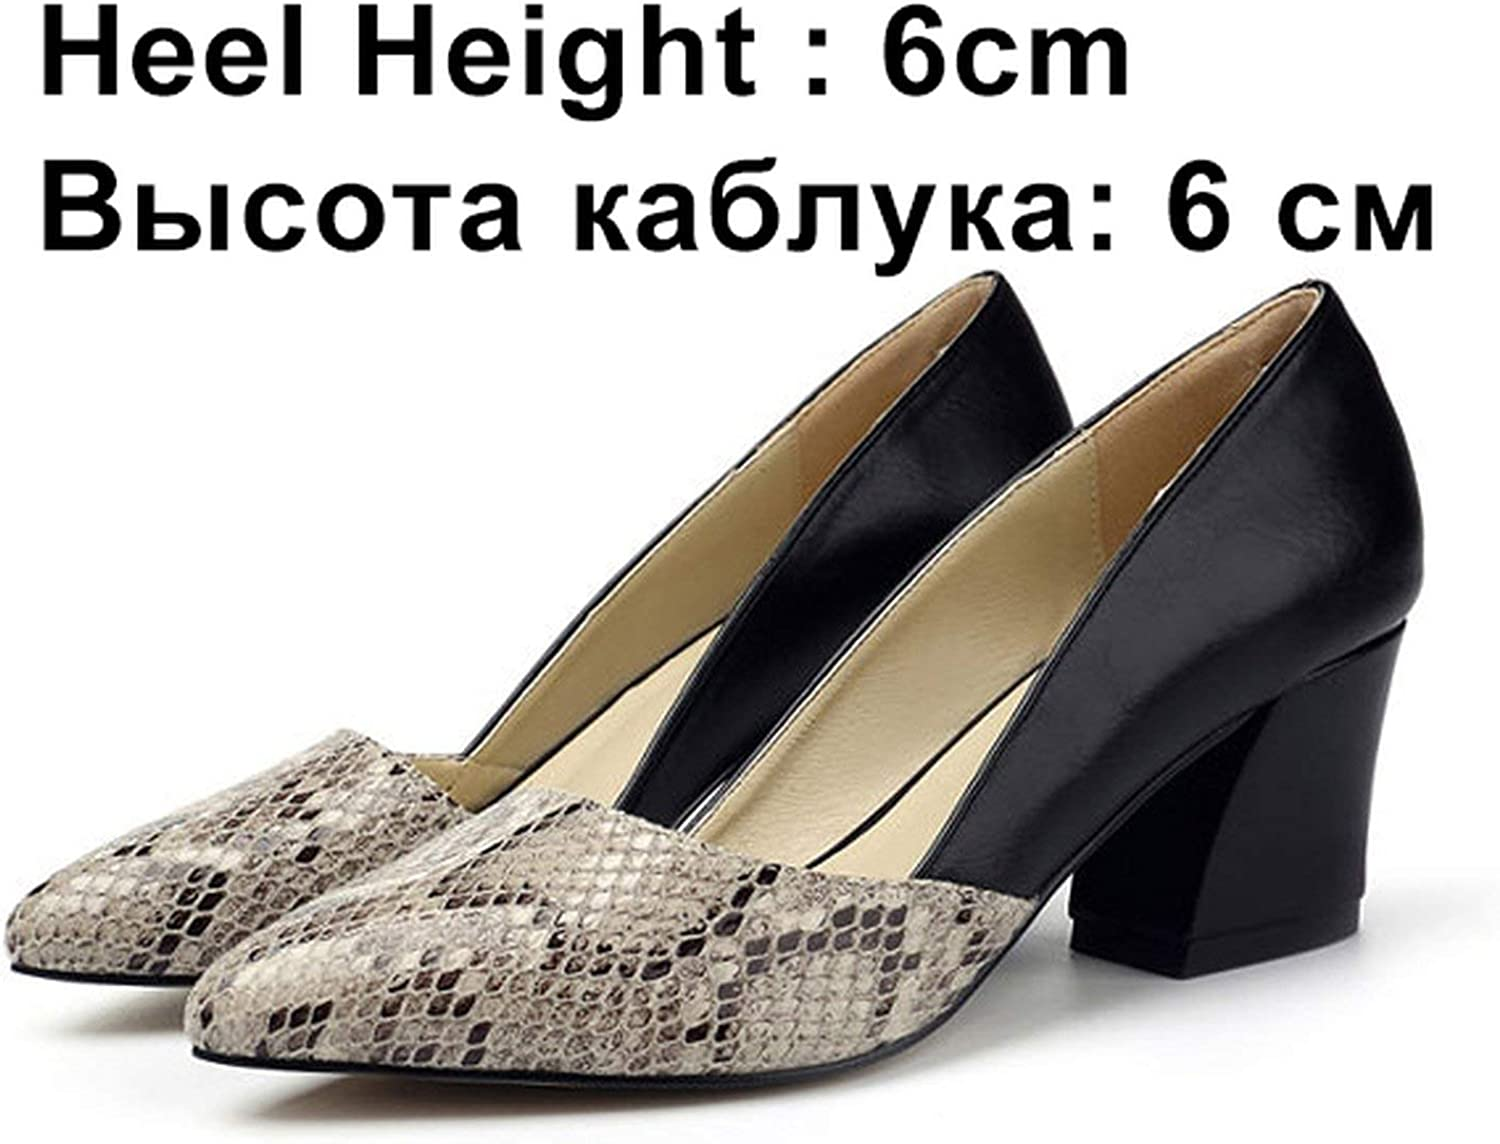 All-About-Us Women Pumps High Heels shoes Woman Spring Autumn Pointed Toe Ladies shoes Platform Soft Leather Sexy Office Wedding shoes Female